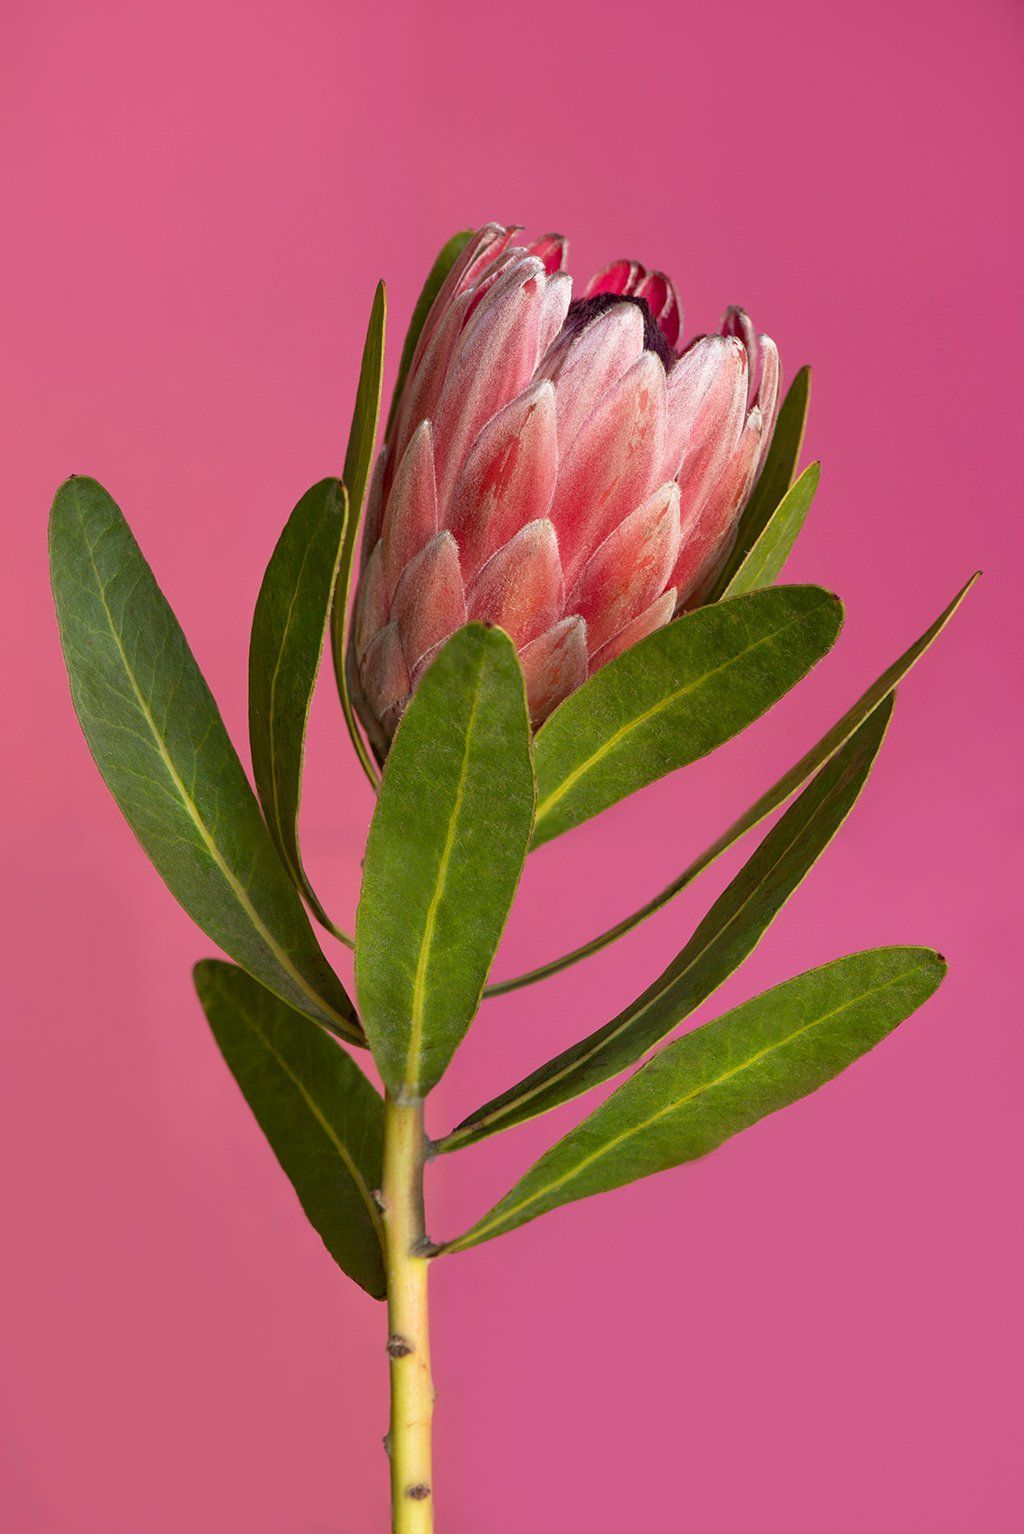 Pin By Maria Morris On Drawings In 2020 Protea Flower Australian Flowers Protea Art